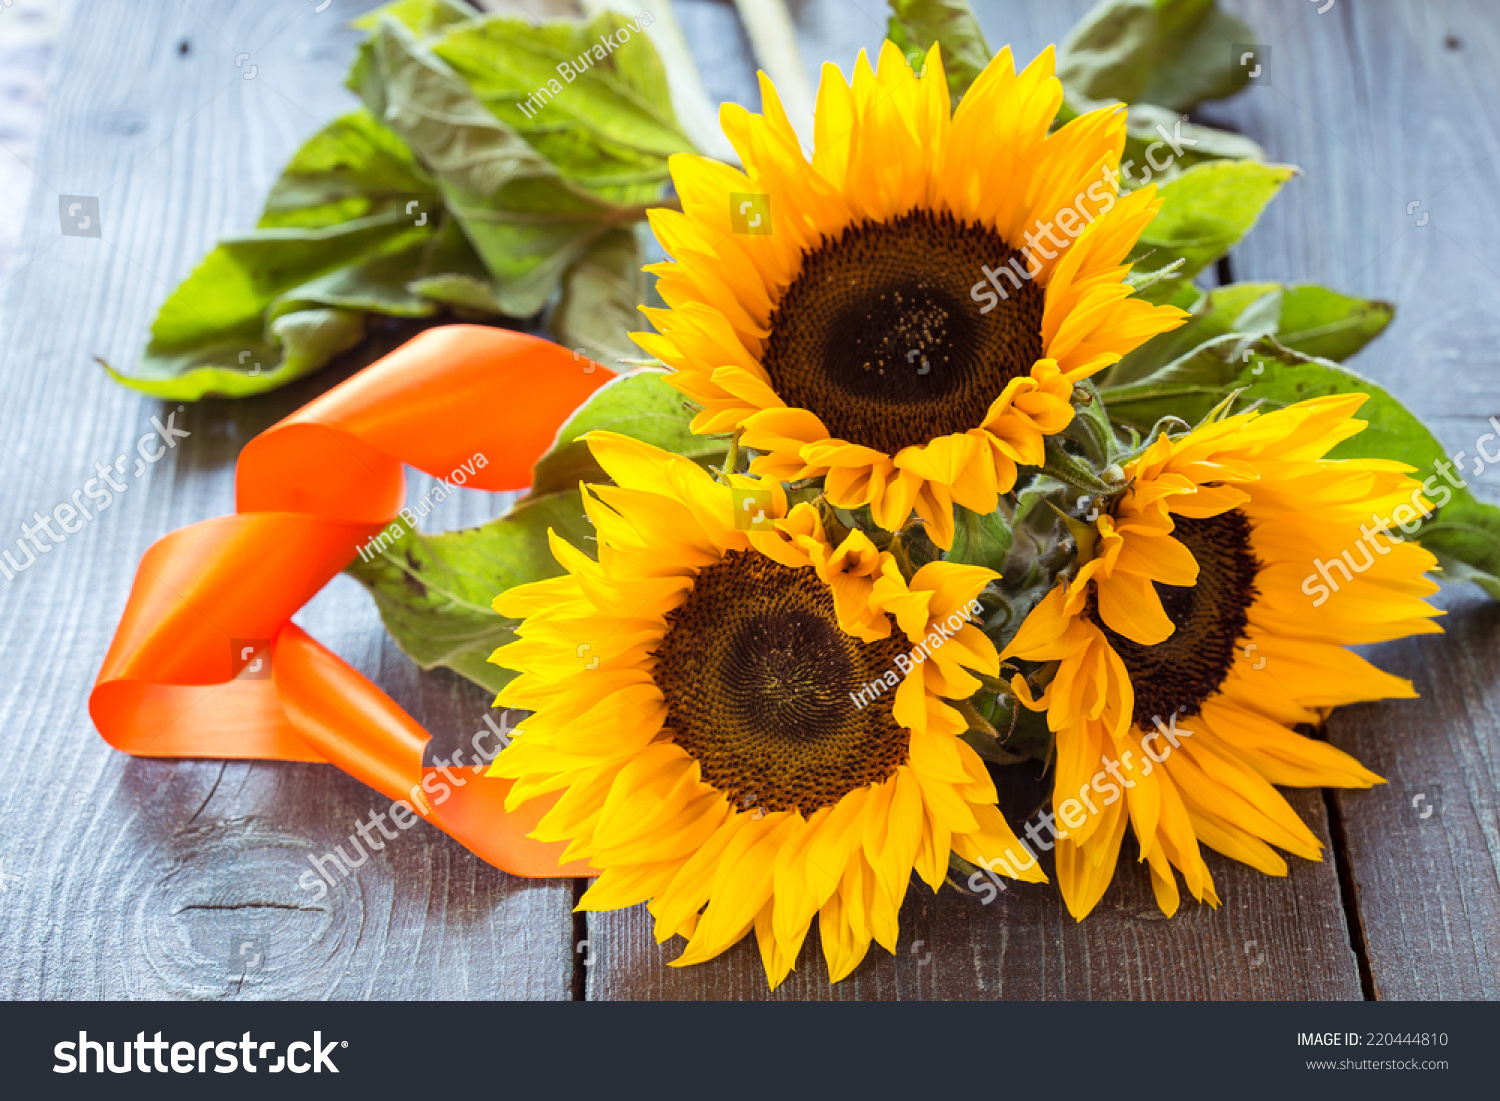 Three Flowers Sunflower On Dark Wooden Stock Photo Edit Now 220444810